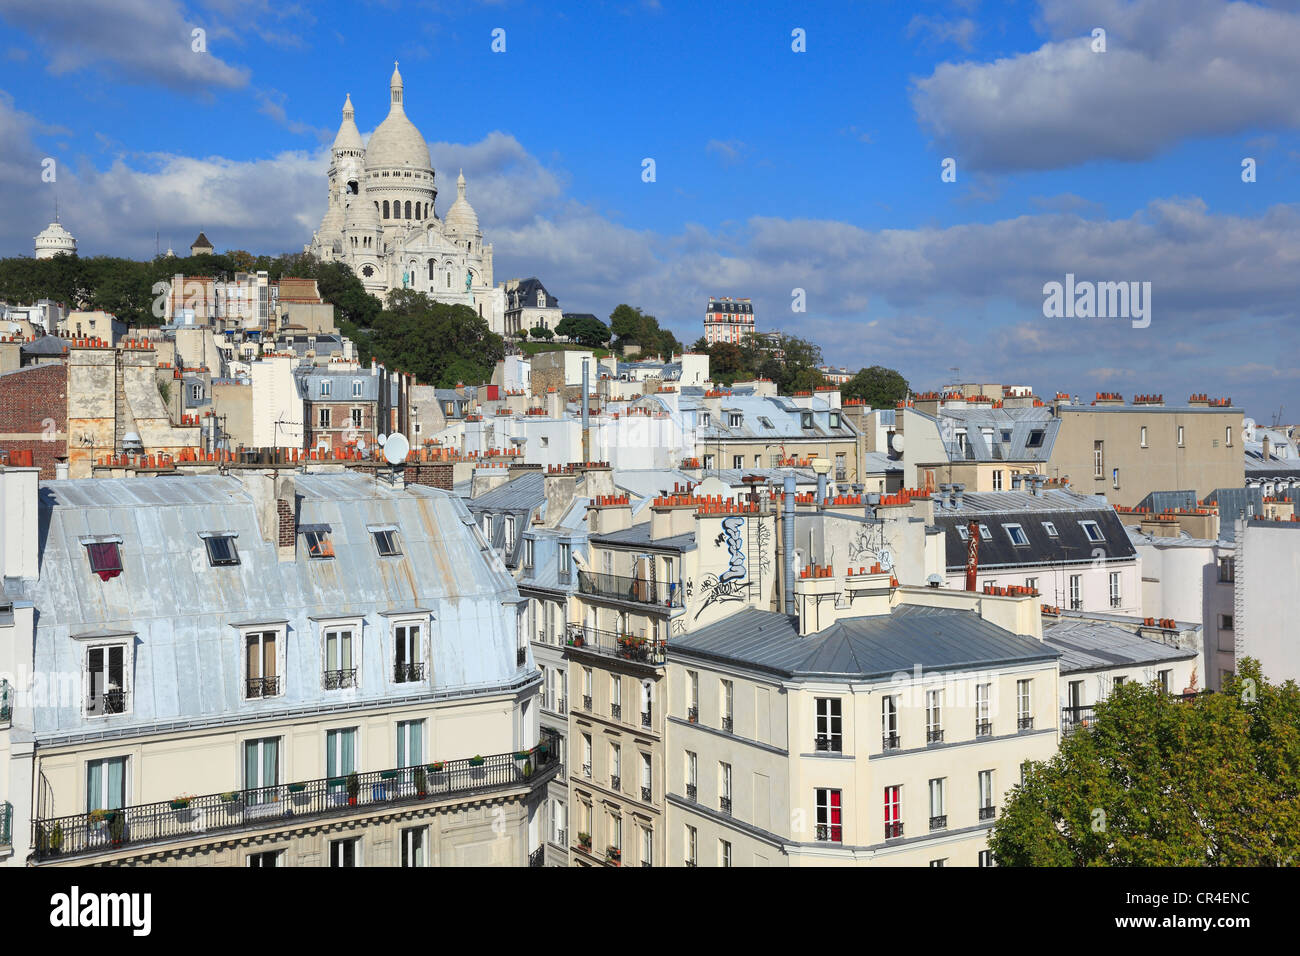 France, Paris, Sacre Coeur basilica and the roofs of Montmartre - Stock Image